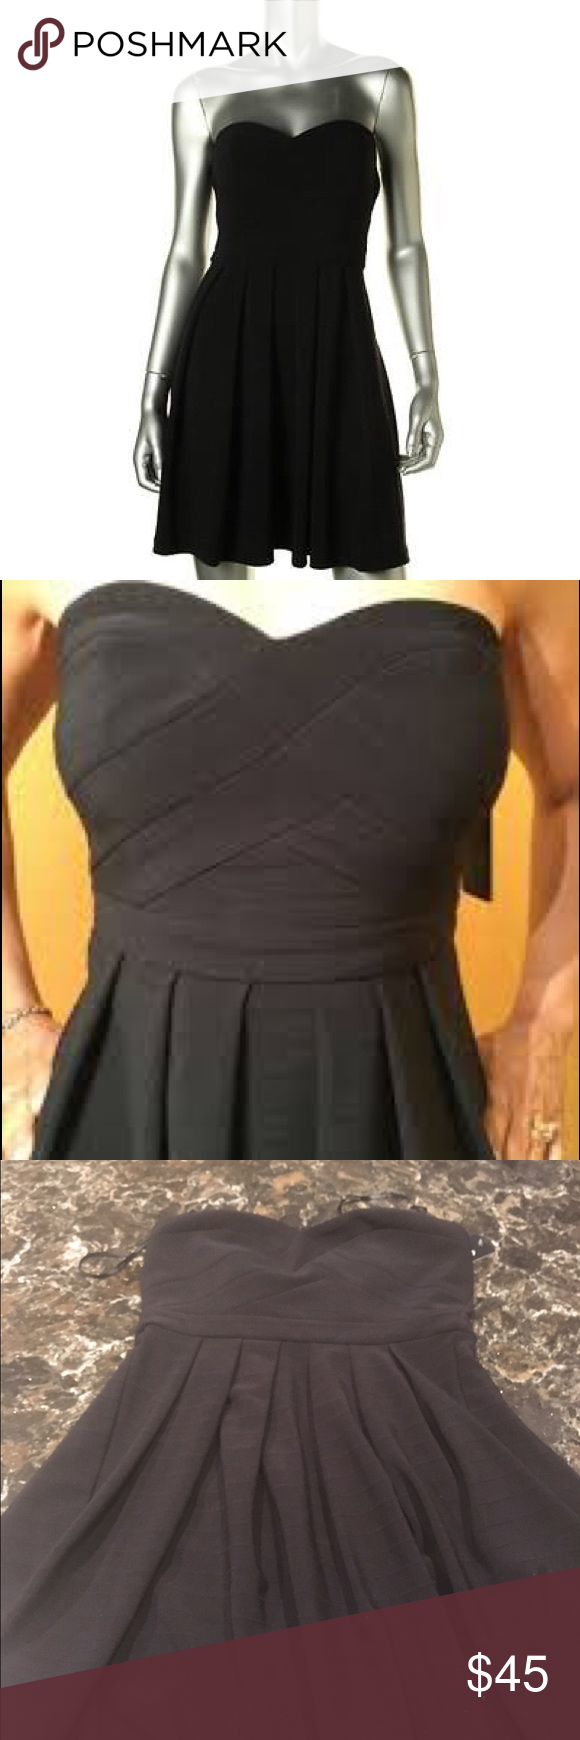 Guess black dress Black formal guess dress. Anise style. Never worn with tags. GUESS Dresses Mini